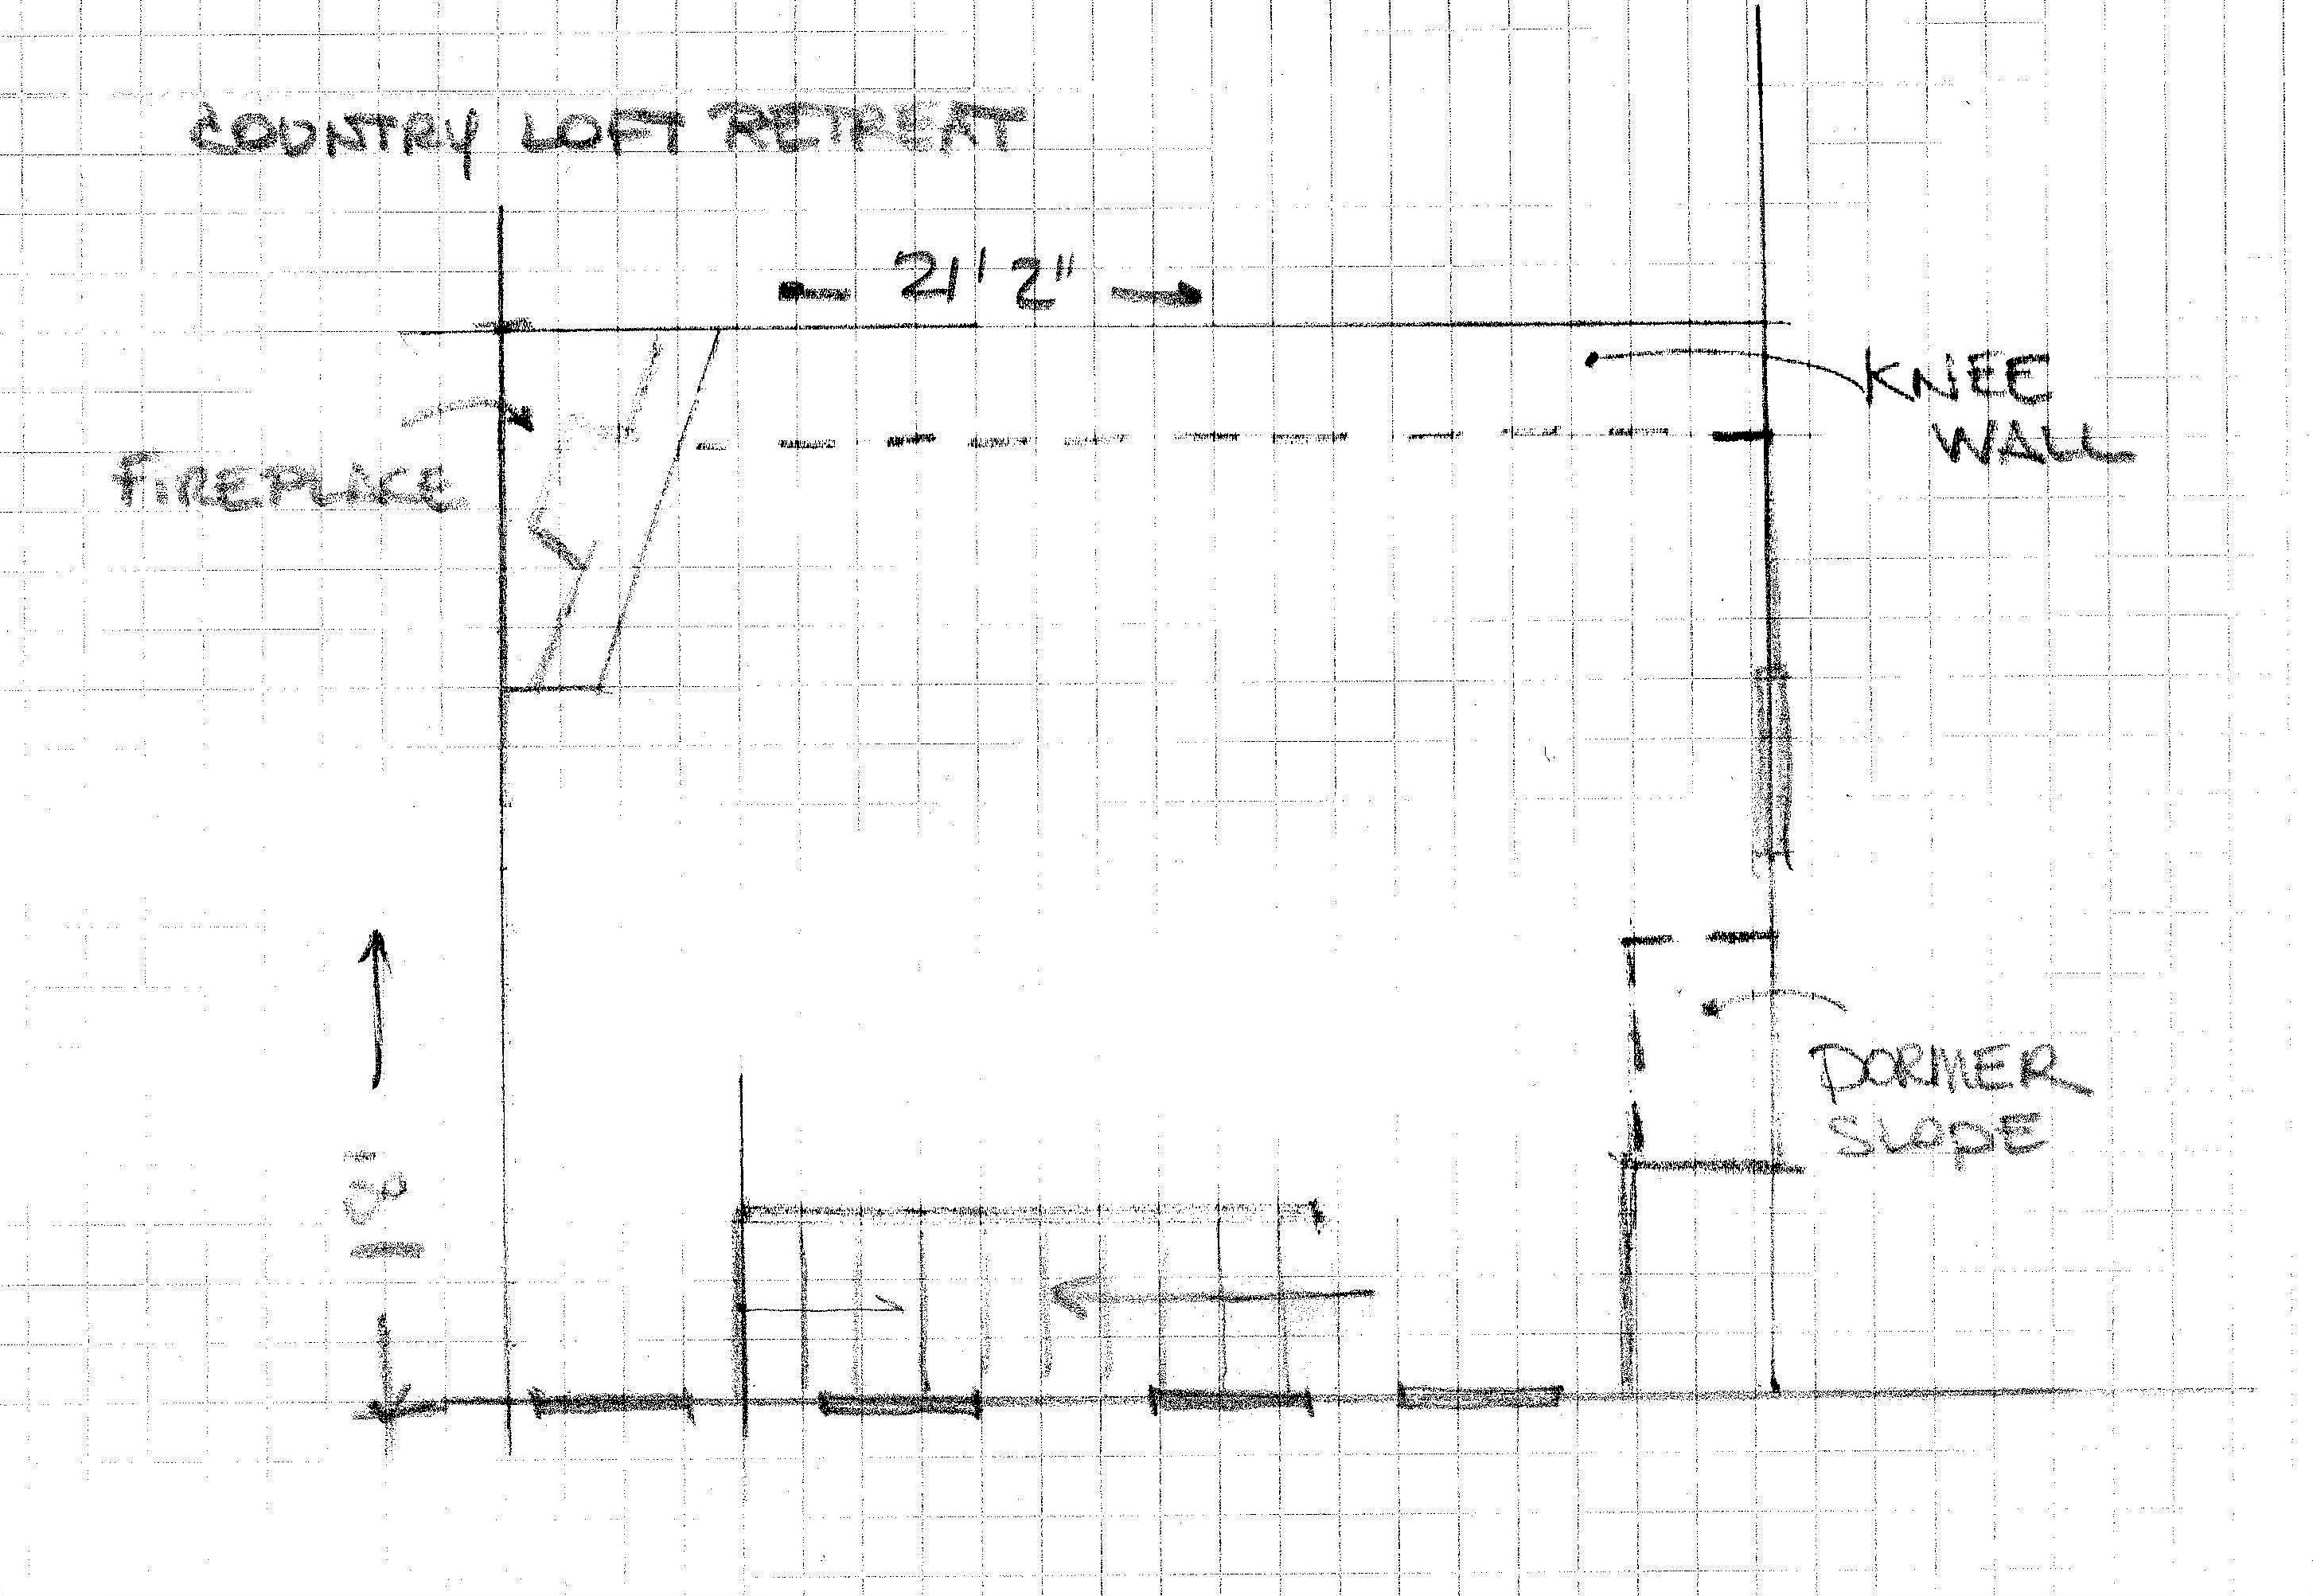 One room challenge Country Loft Retreat Floor Plan